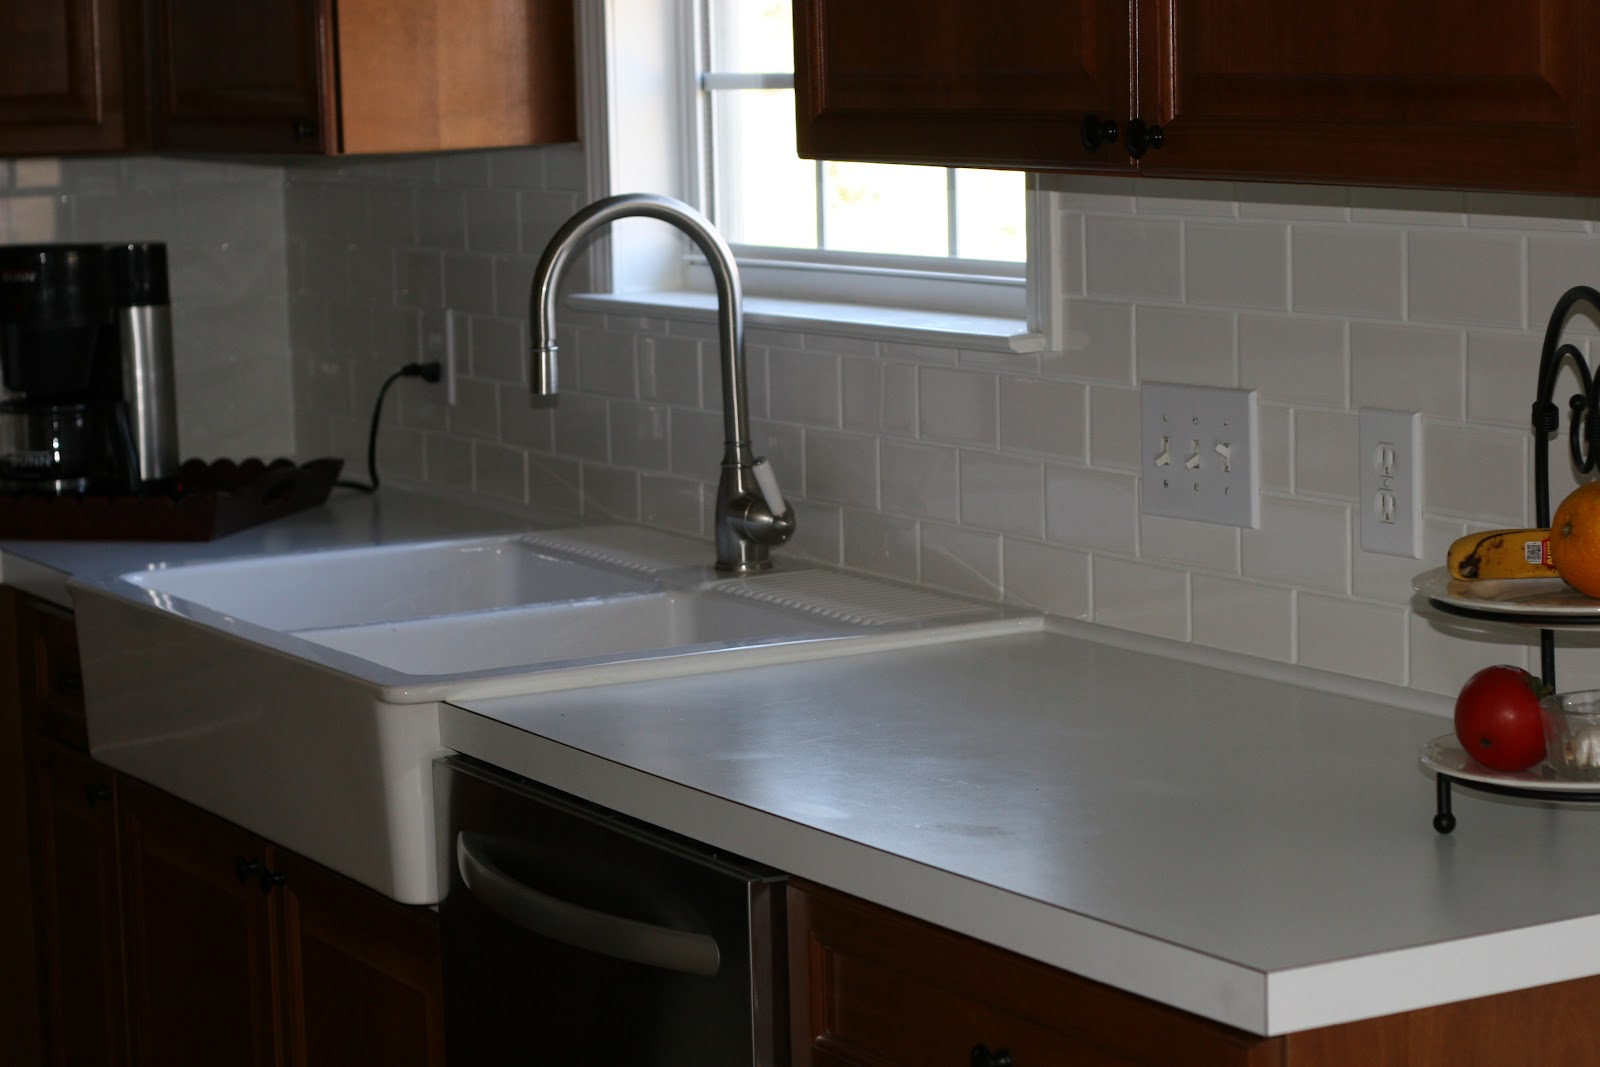 Kitchen Sink Backsplash : What makes me happy: New Kitchen Sink and backsplash